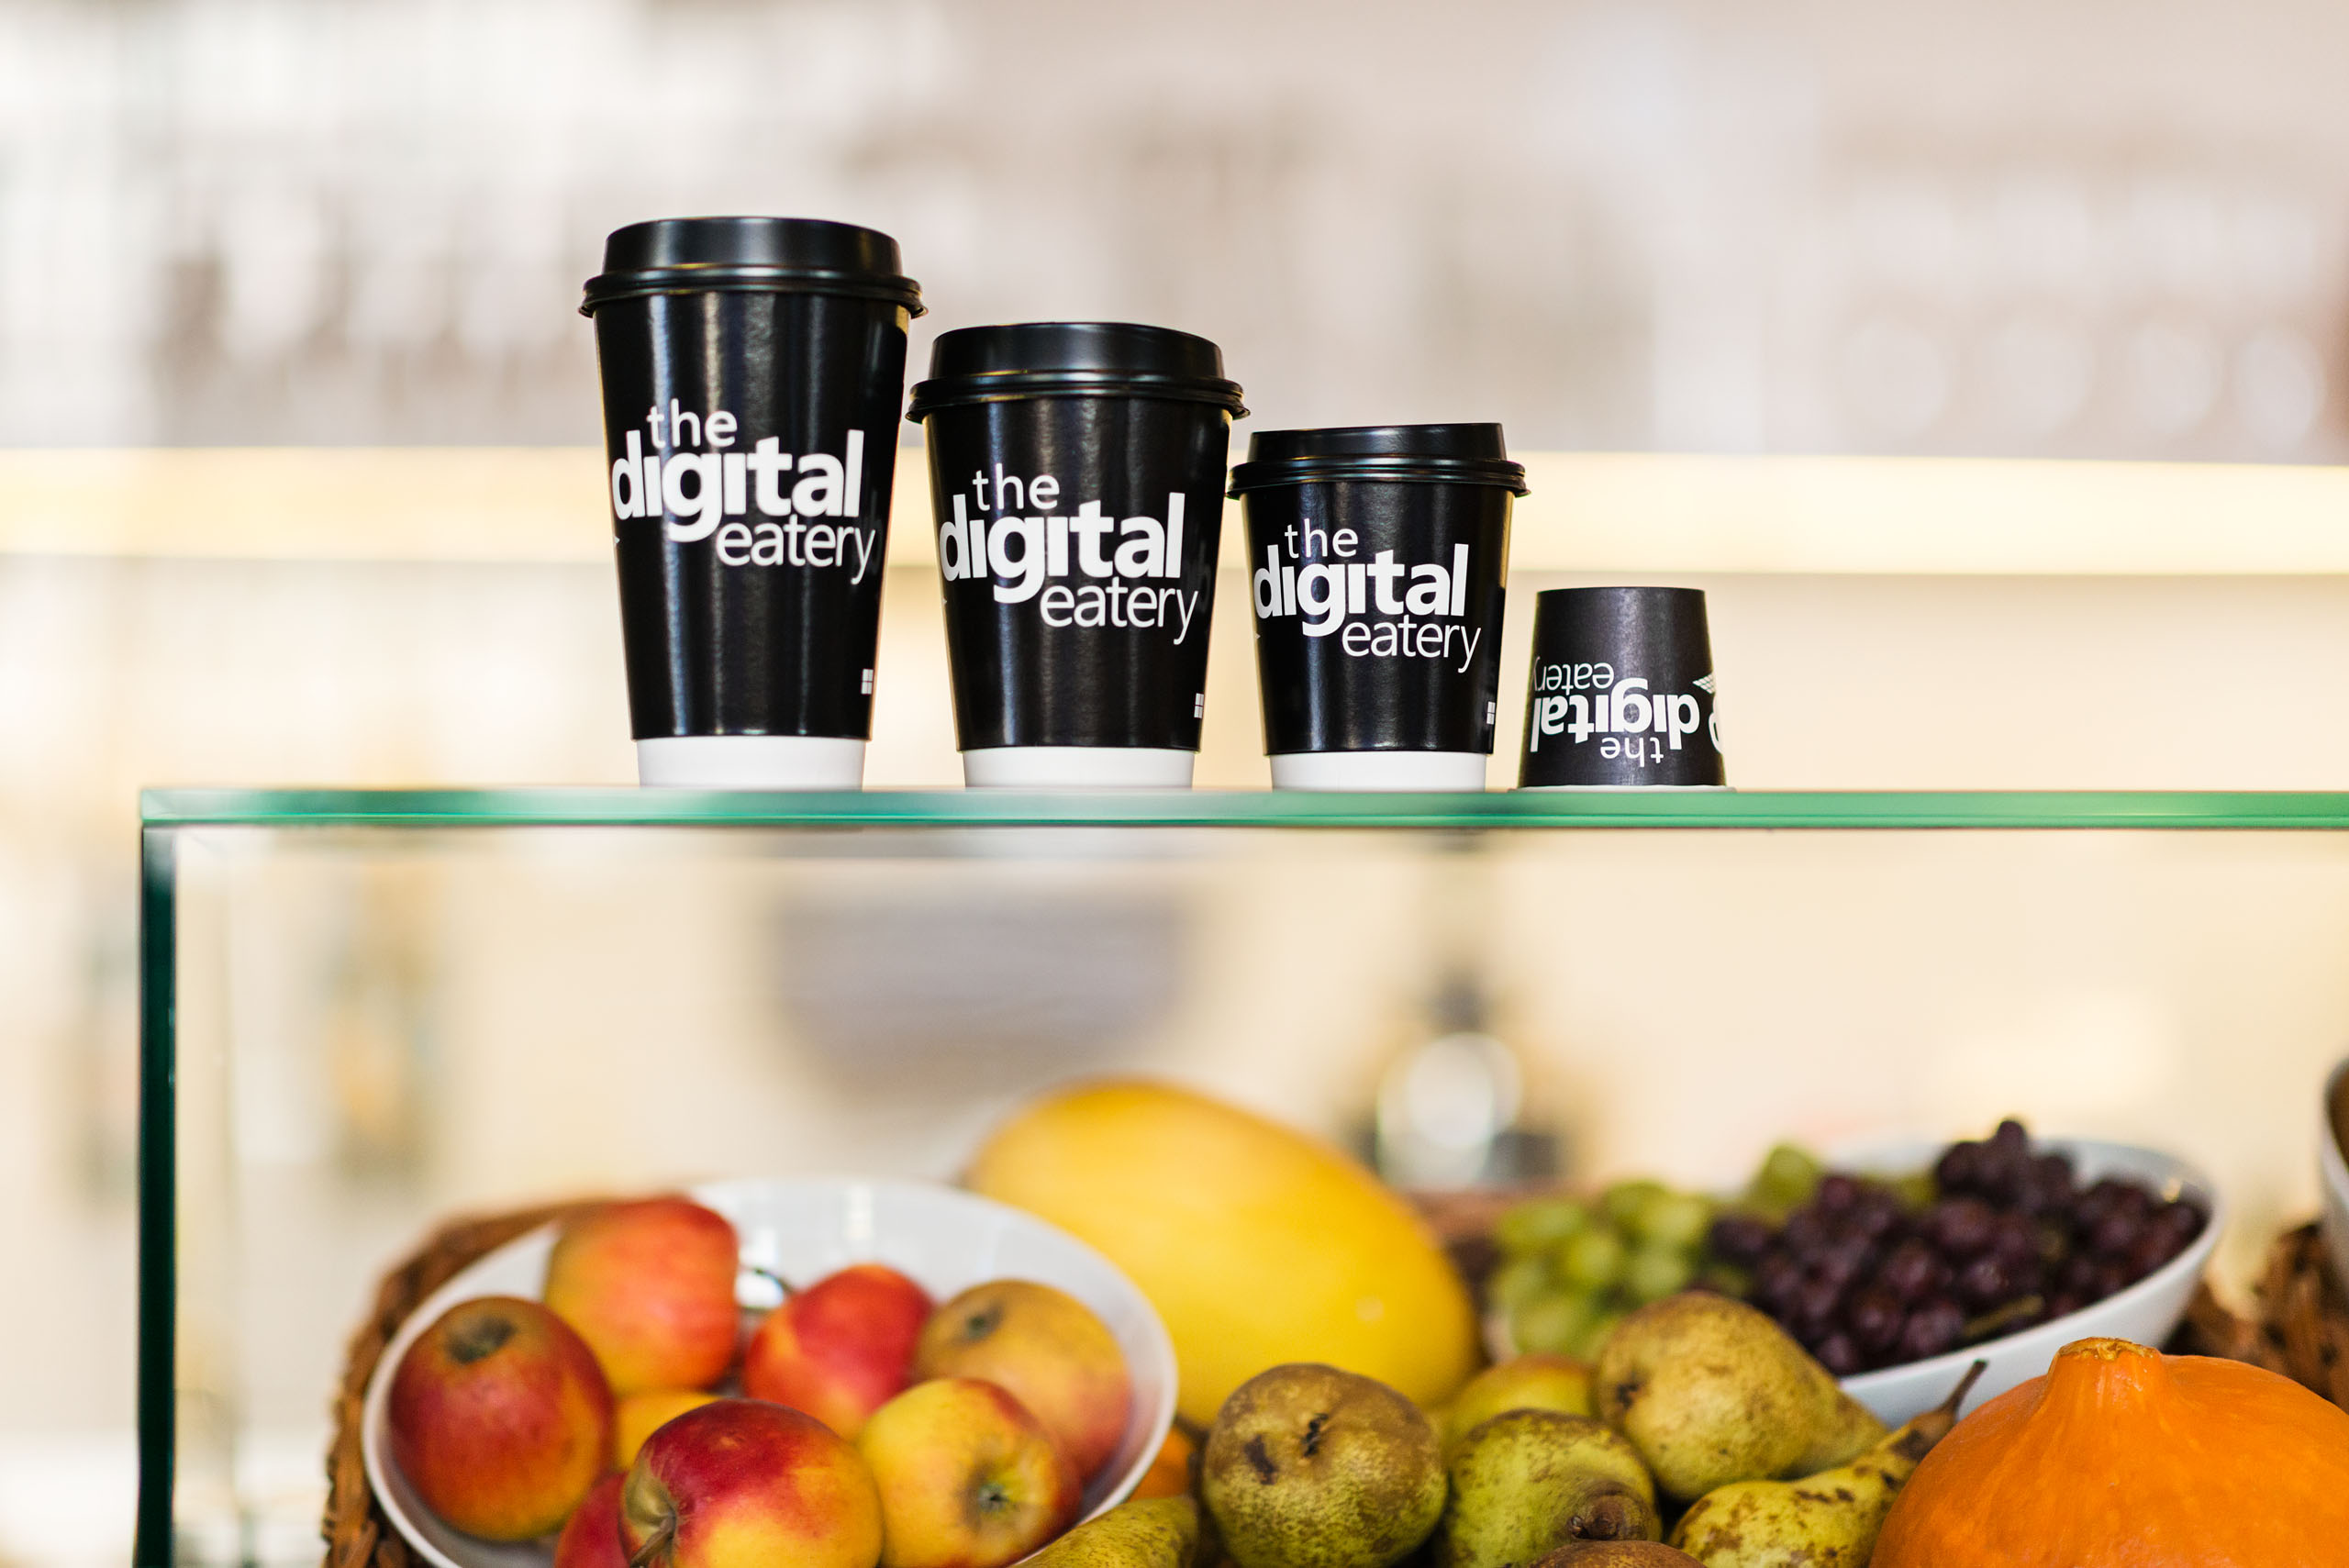 DigitalEatery, Berlin, Microsoft